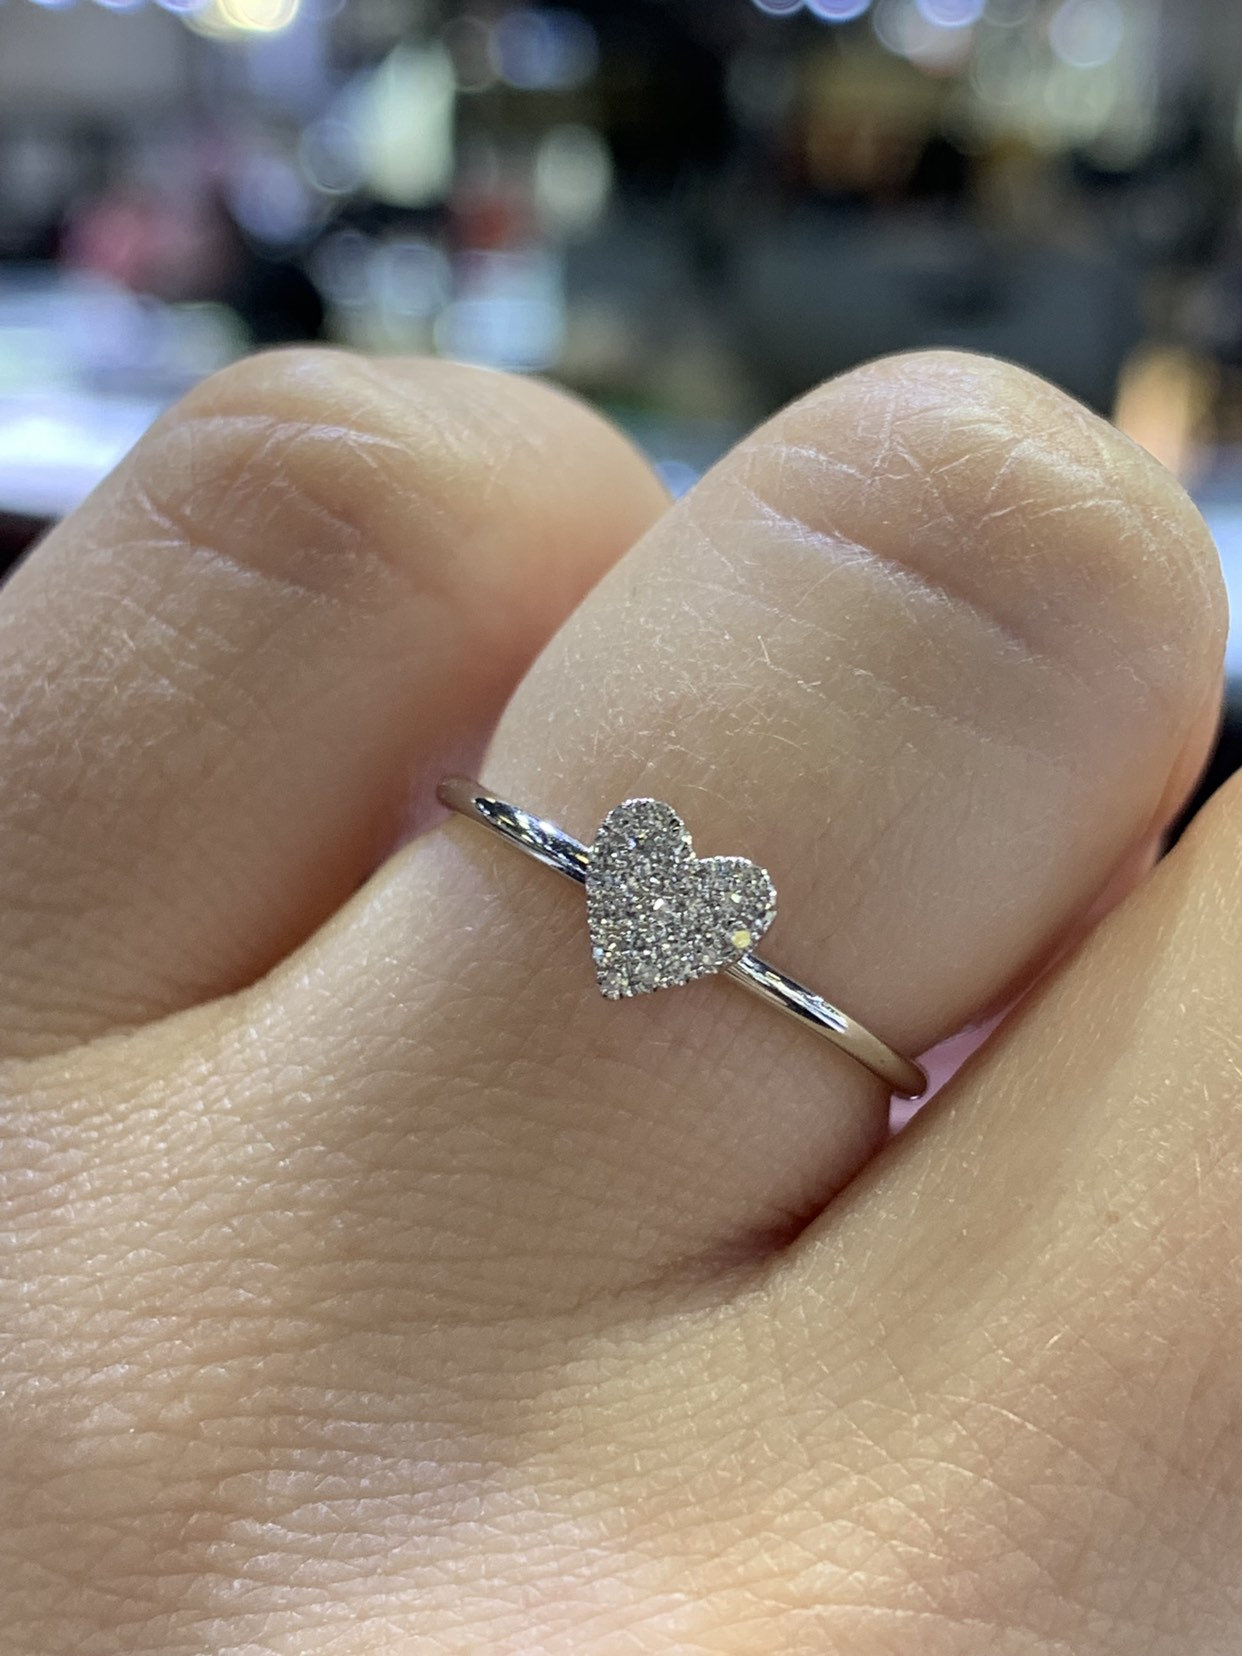 14K White Gold Diamond Heart Shape Ring Wedding Ring With Regard To Latest Diamond Heart Shaped Anniversary Bands In Gold (View 4 of 25)